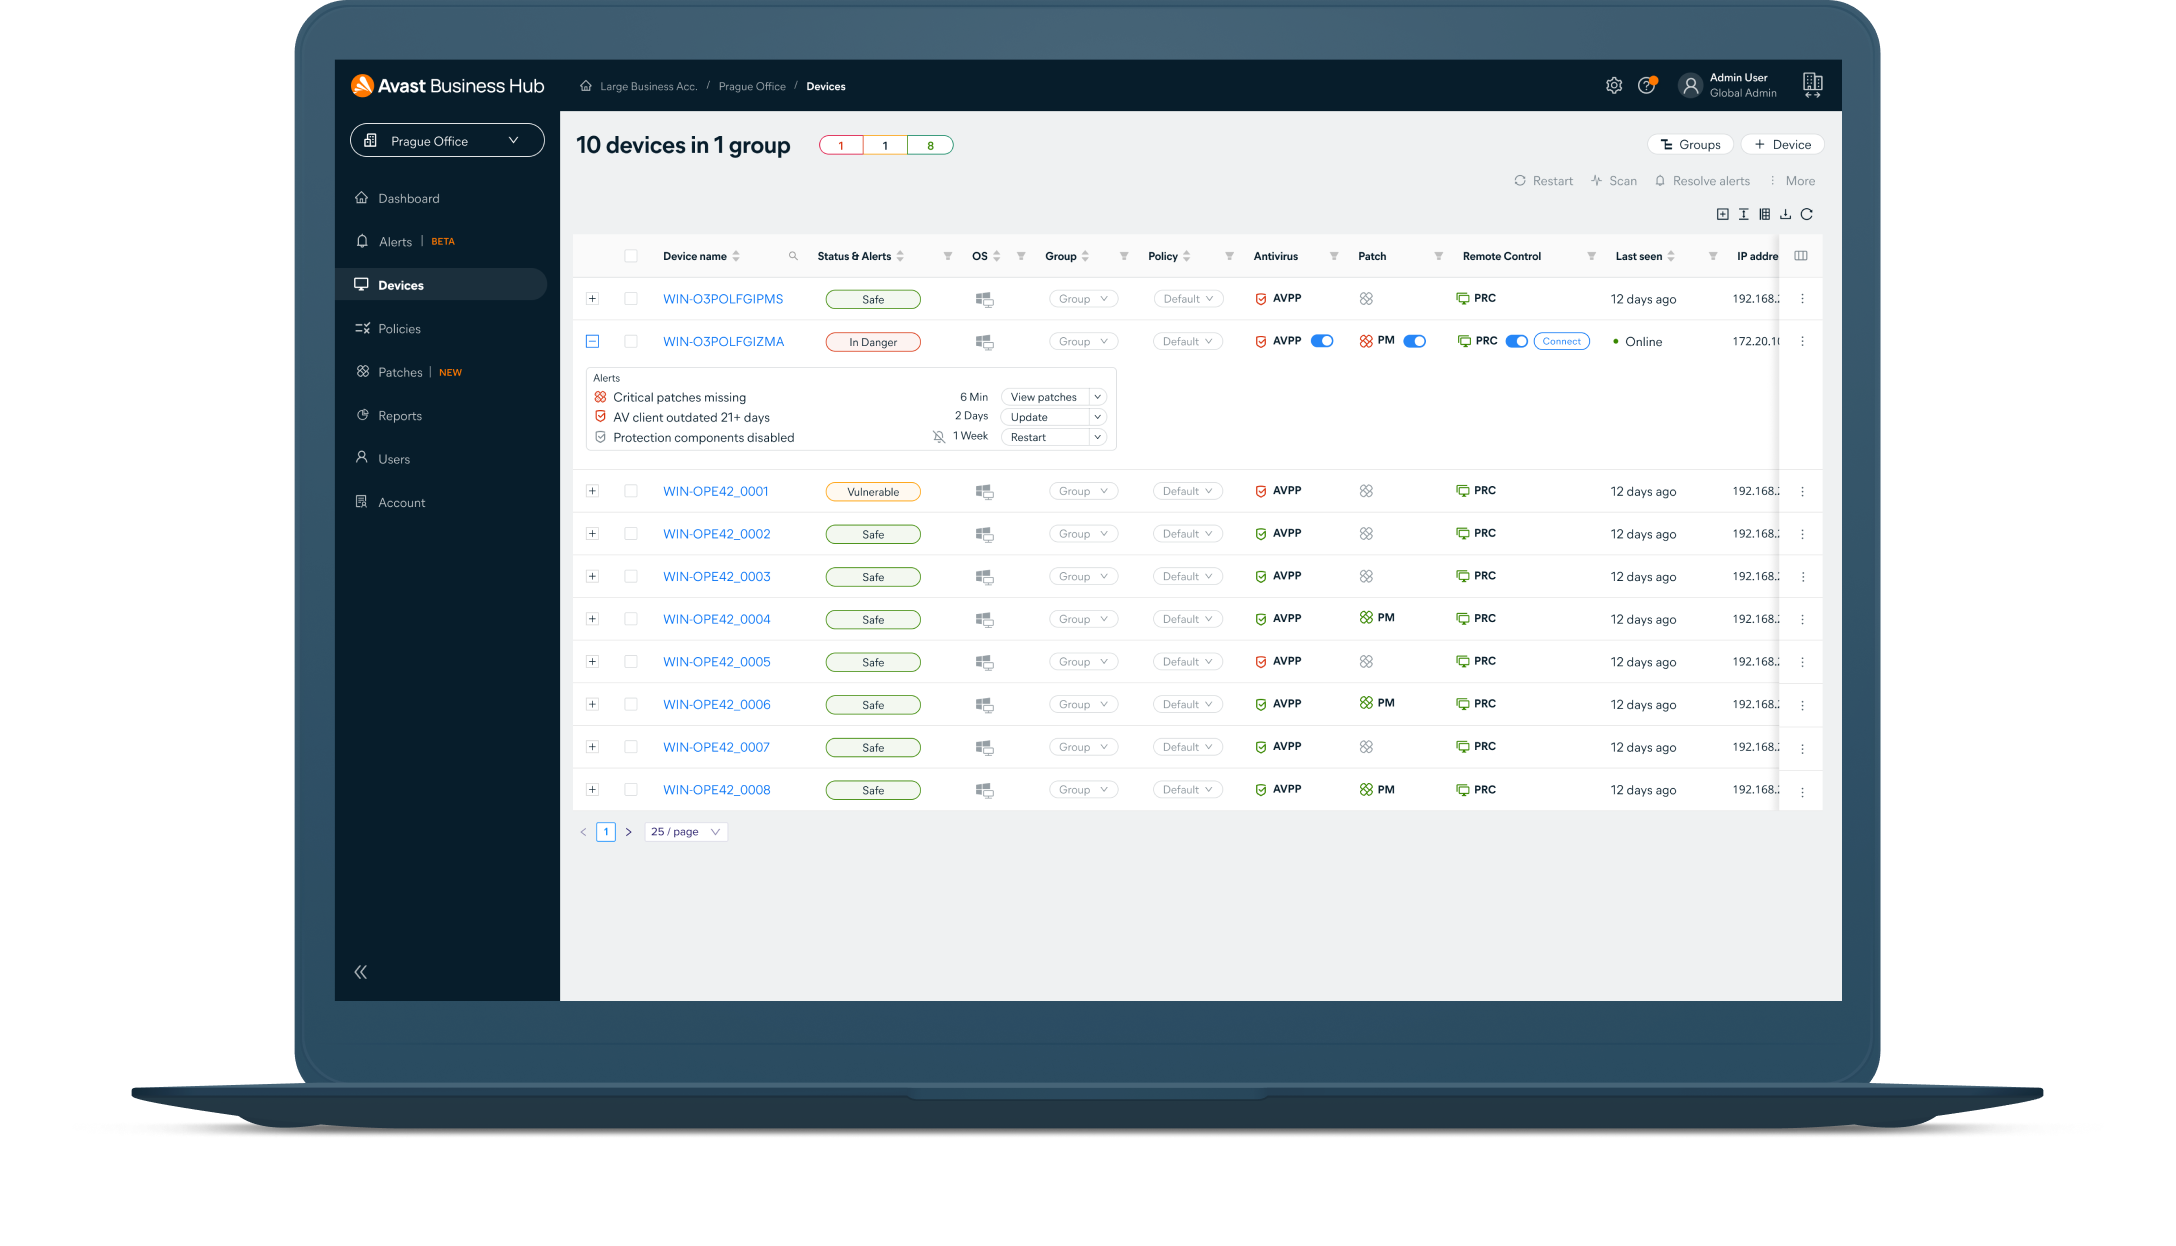 Manage security for all devices with the Business Hub agent. Policy changes will automatically configure themselves on the agent-controlled devices in real time, requiring less maintenance and making it easier to scale business operations.